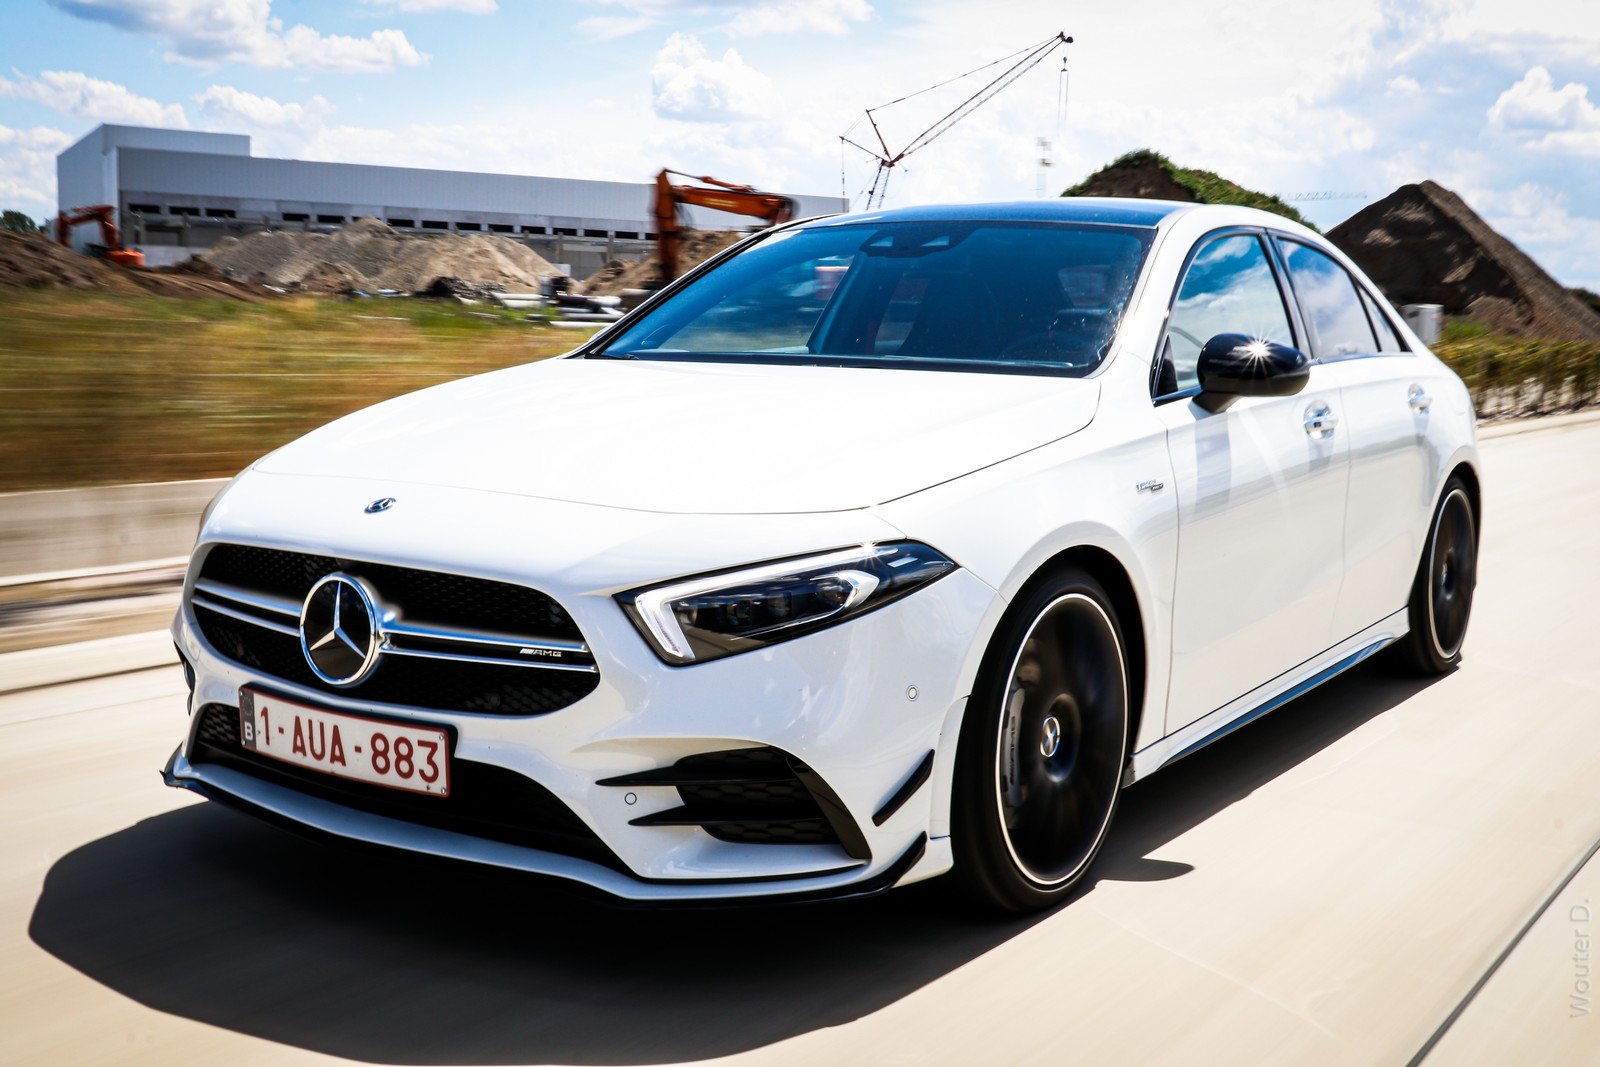 2020 Mercedes-AMG A35 Sedan: 5 Things We Like